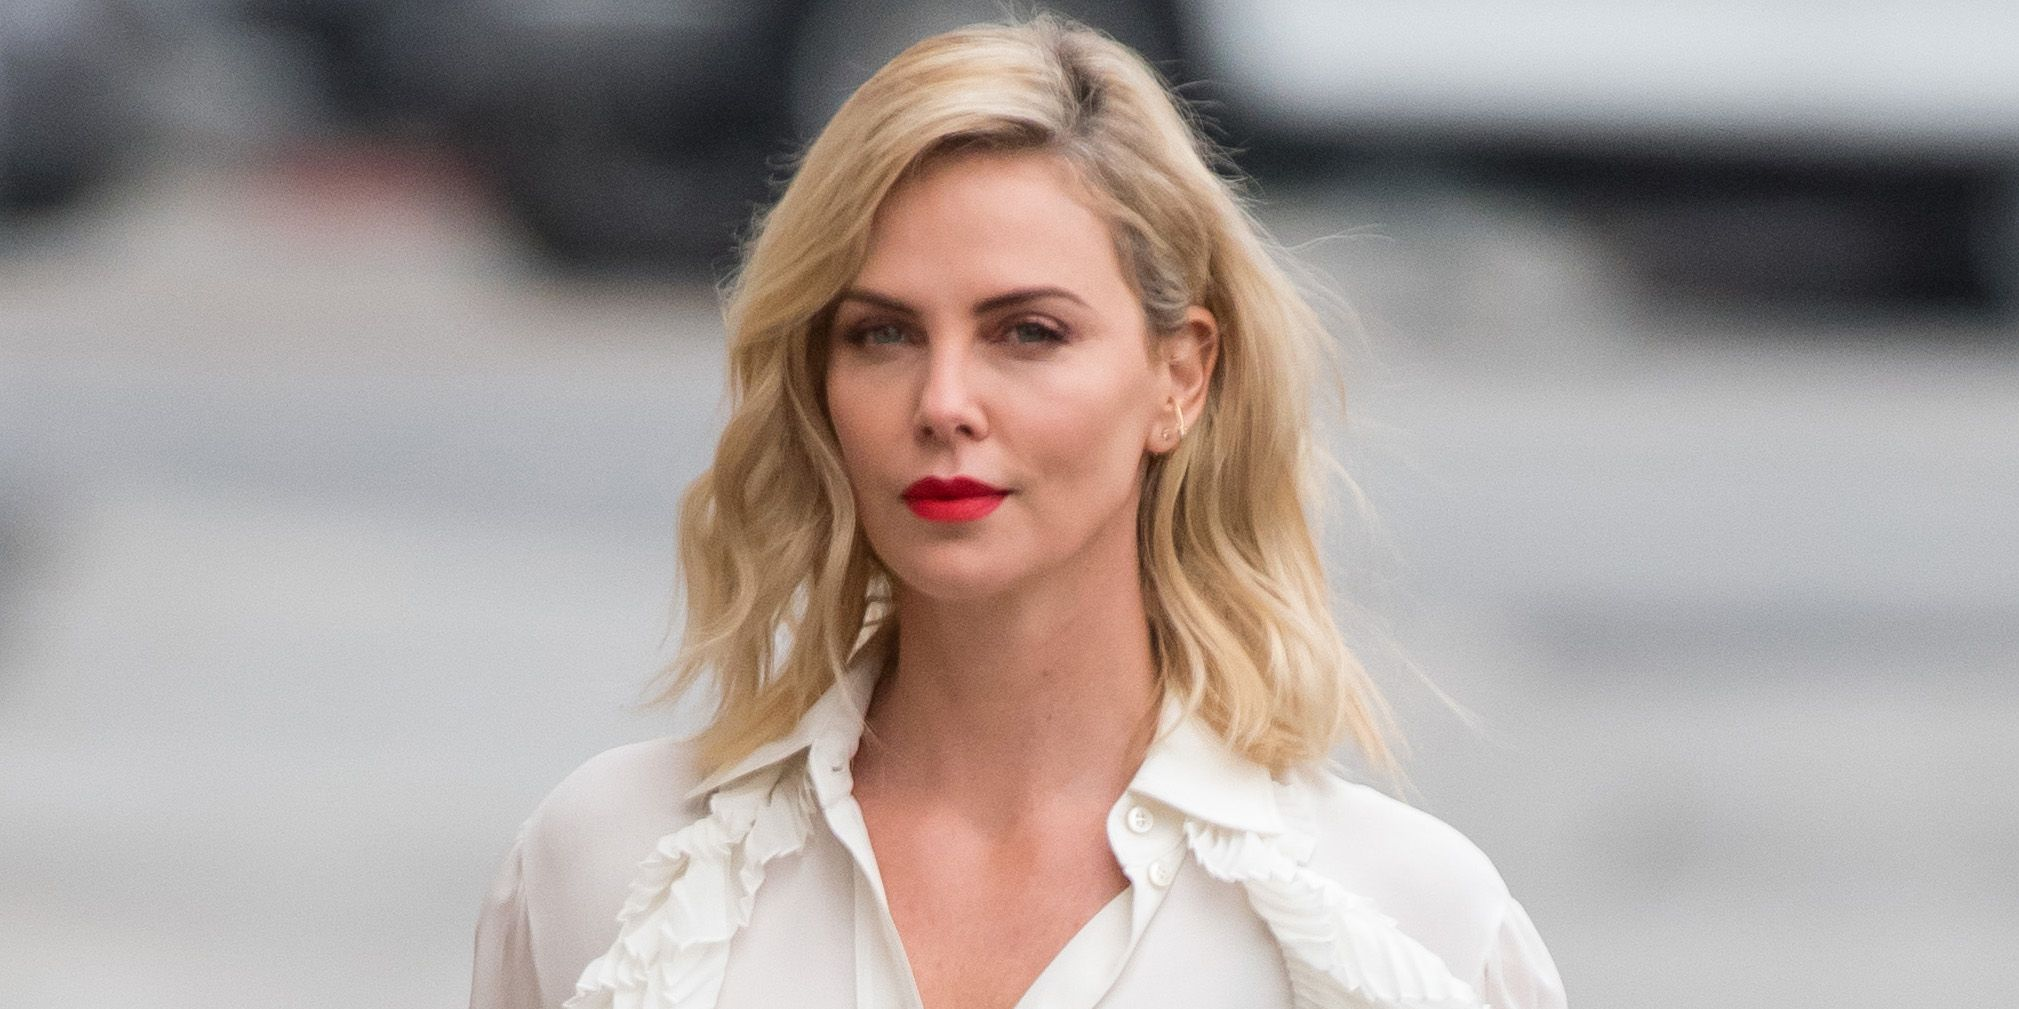 Charlize Theron Gained 50lbs For Her New Movie By Eating Mac and Cheese at 2 AM